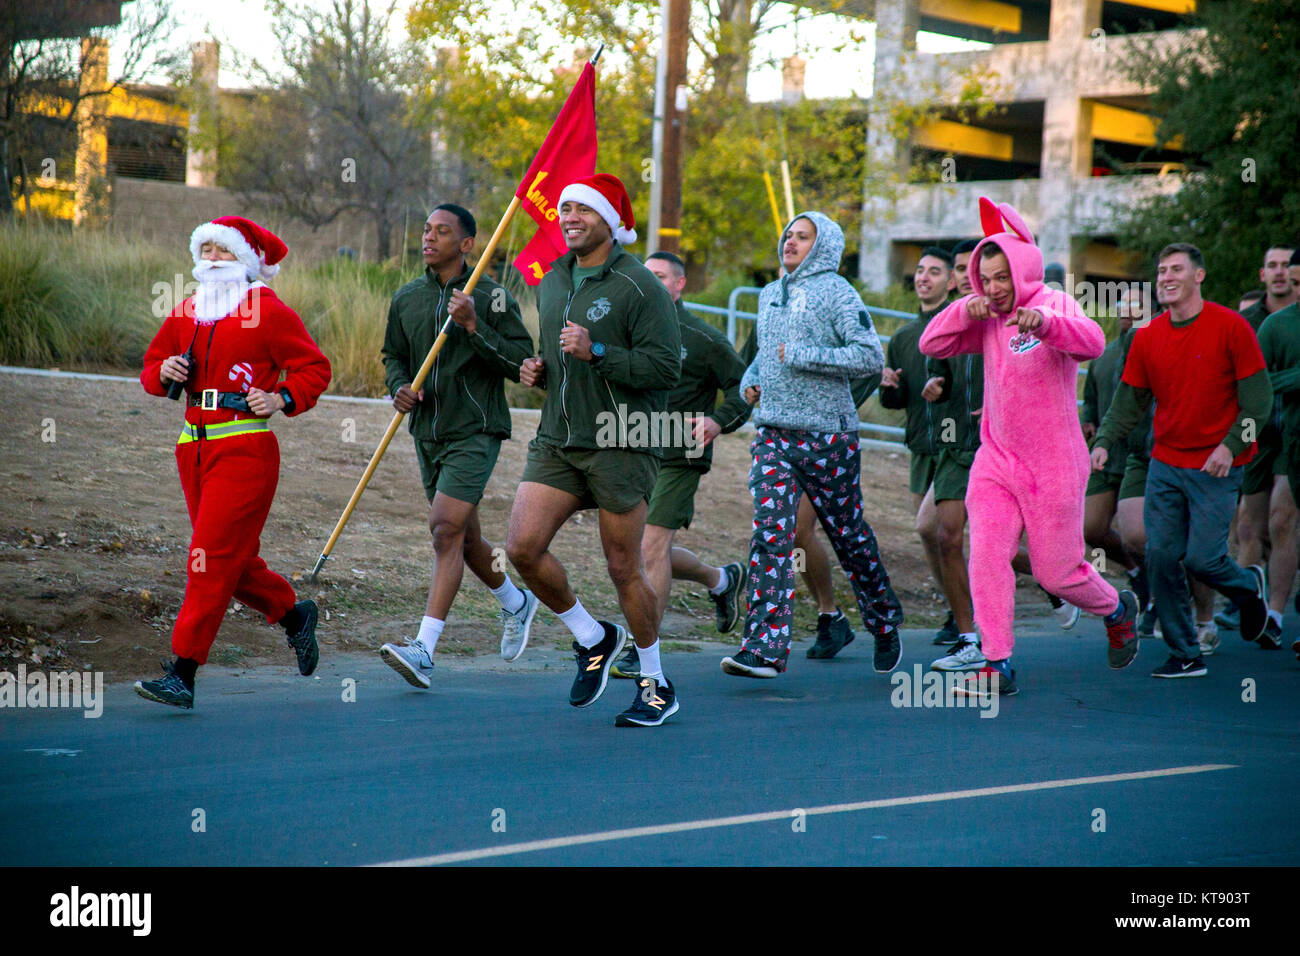 Oceanside, United States. 22nd Dec, 2017. U.S. Marines wearing Santa costumes take part in the annual Christmas Stock Photo